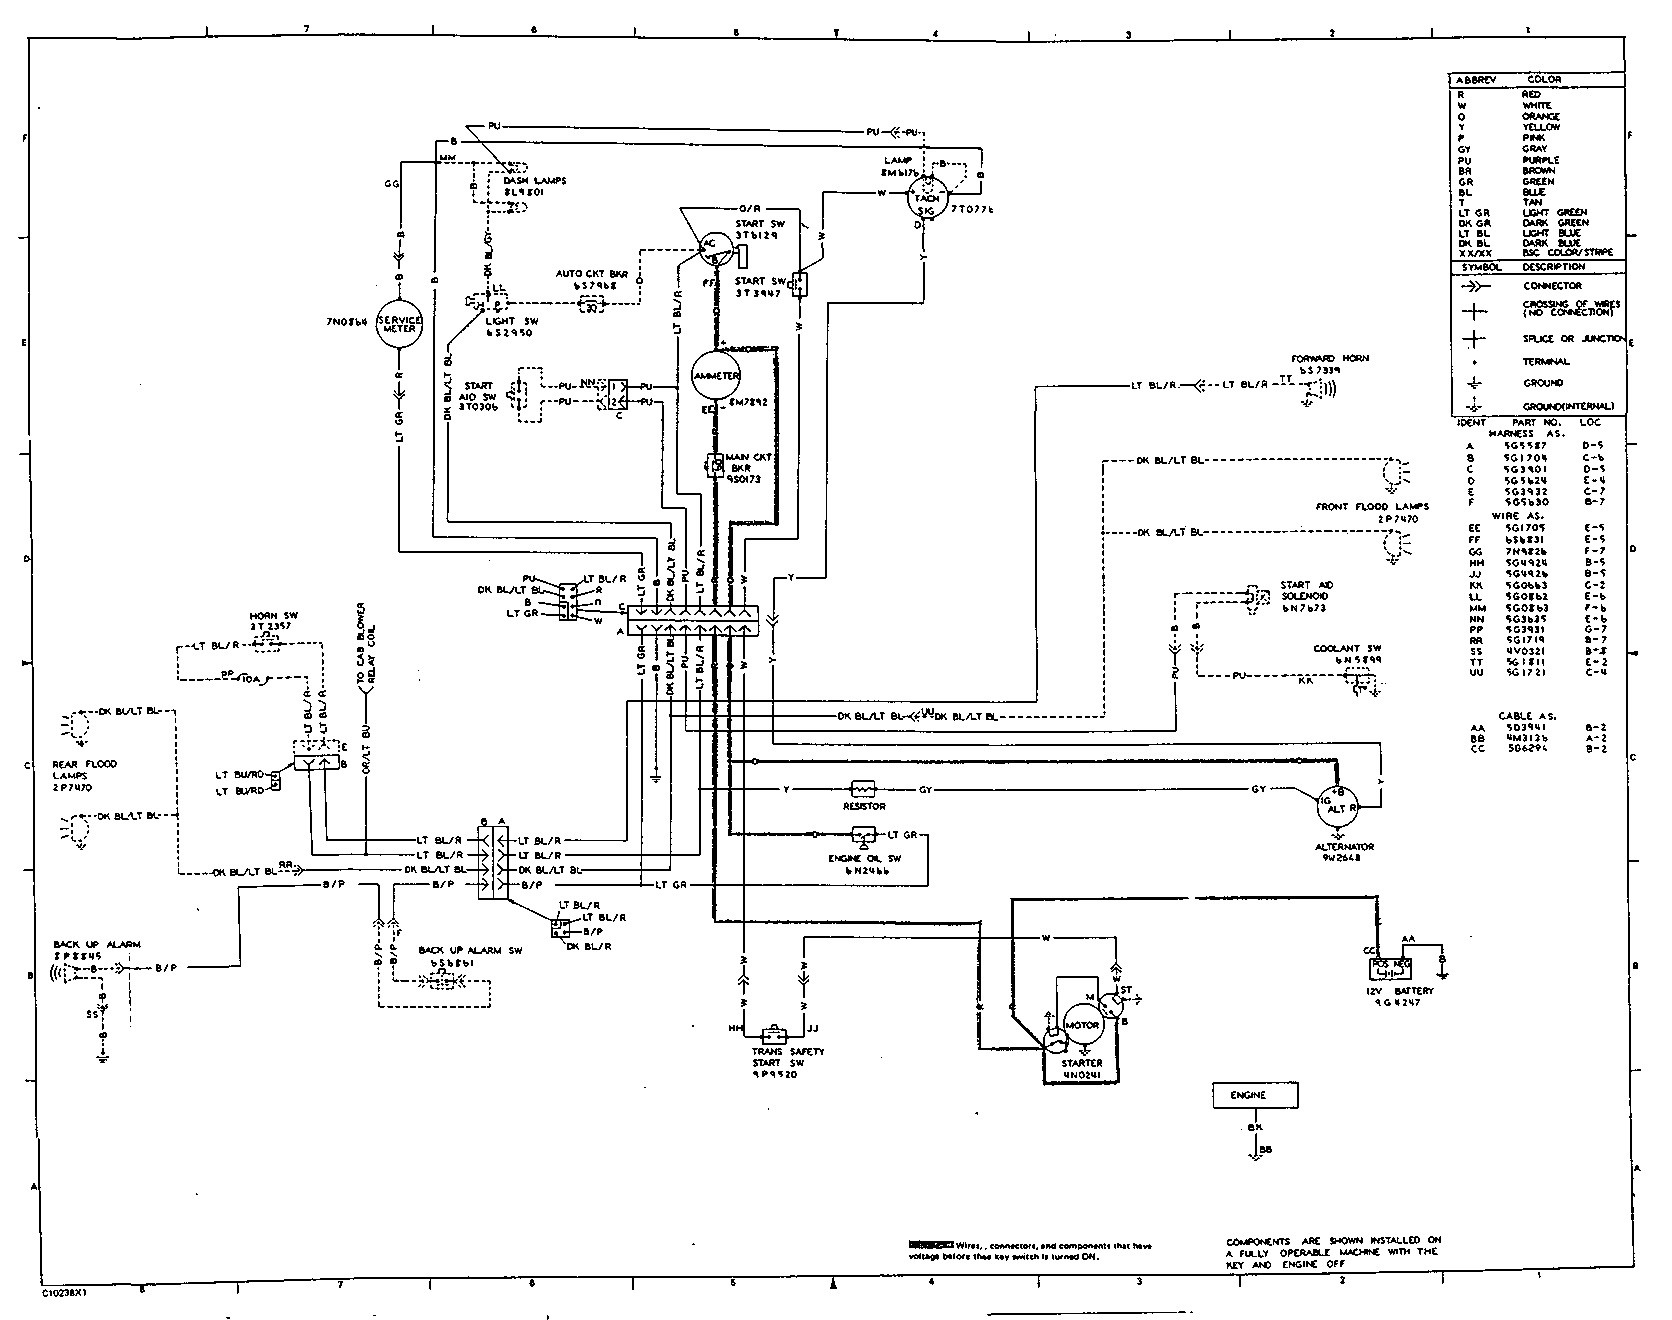 c15 engine diagram layout wiring diagrams u2022 rh laurafinlay co uk  Caterpillar Generator Wiring Diagram wiring